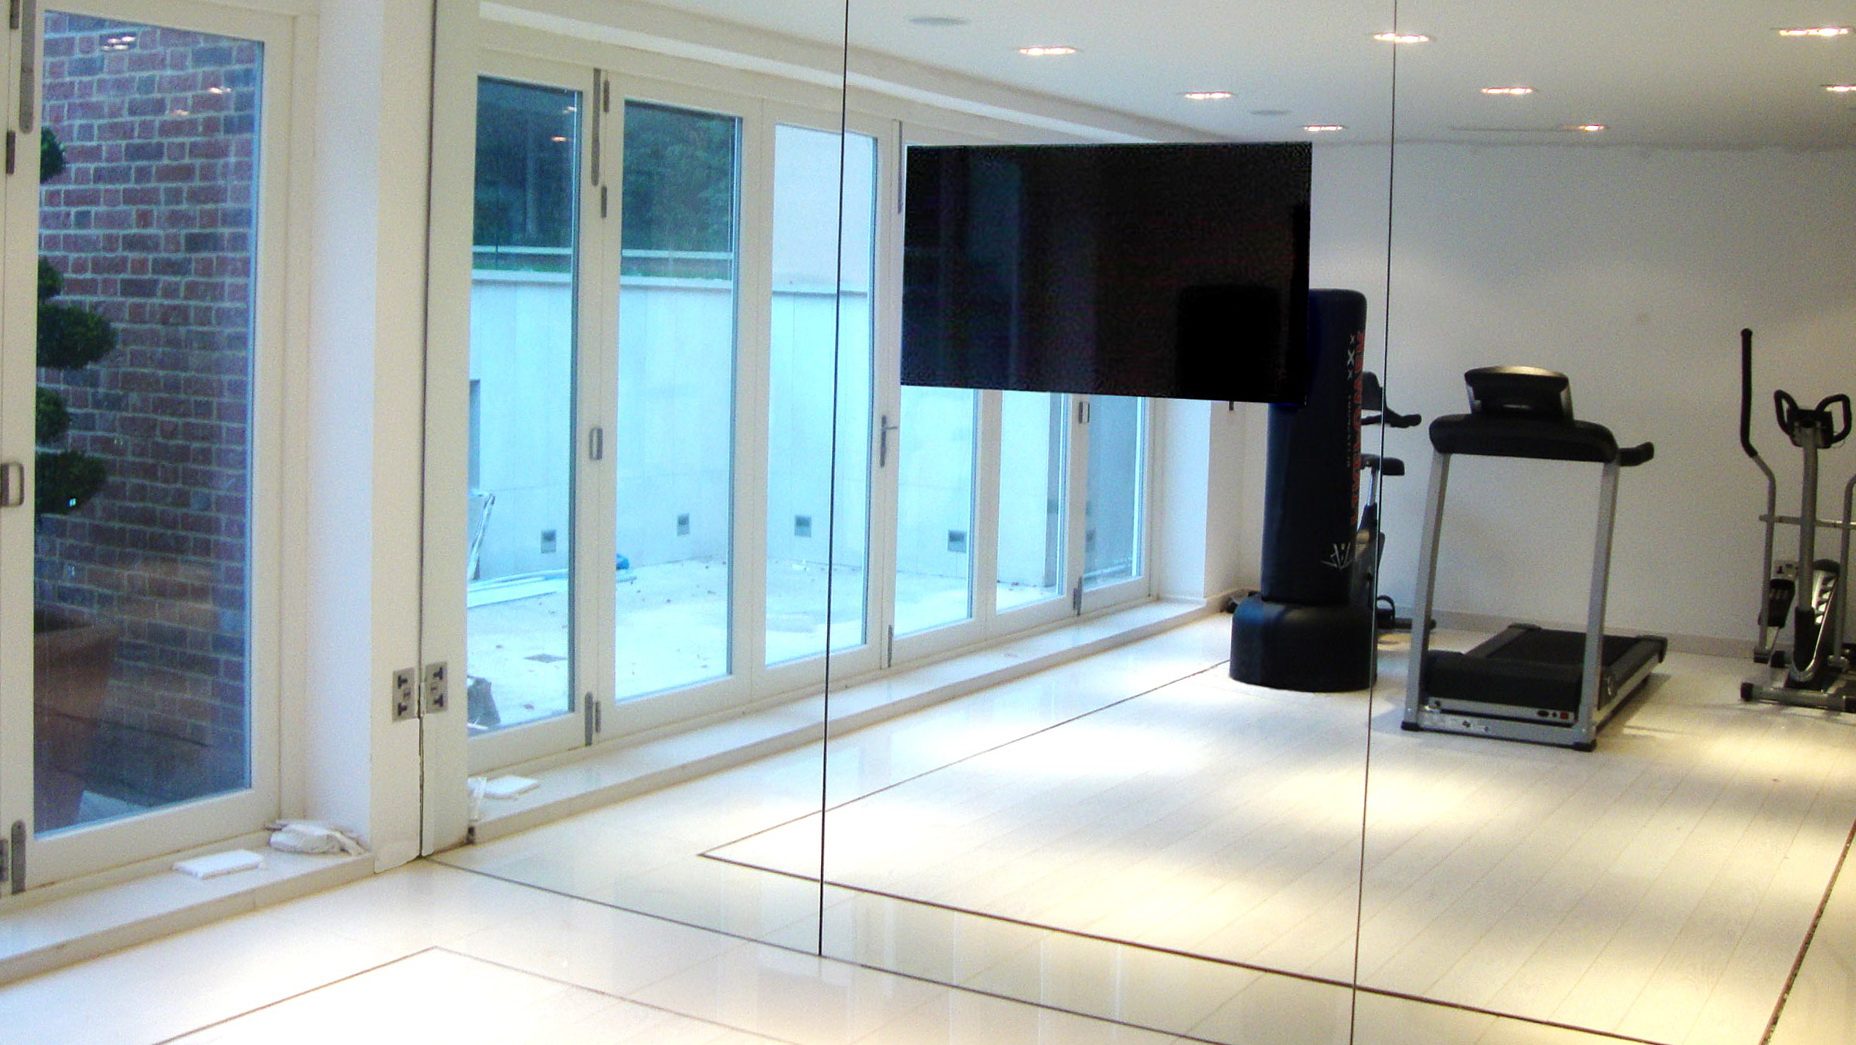 Home Gym Mirrors Home Depot – Cjl Webcare Solutions With Famous Wall Mirrors For Home Gym (View 17 of 20)